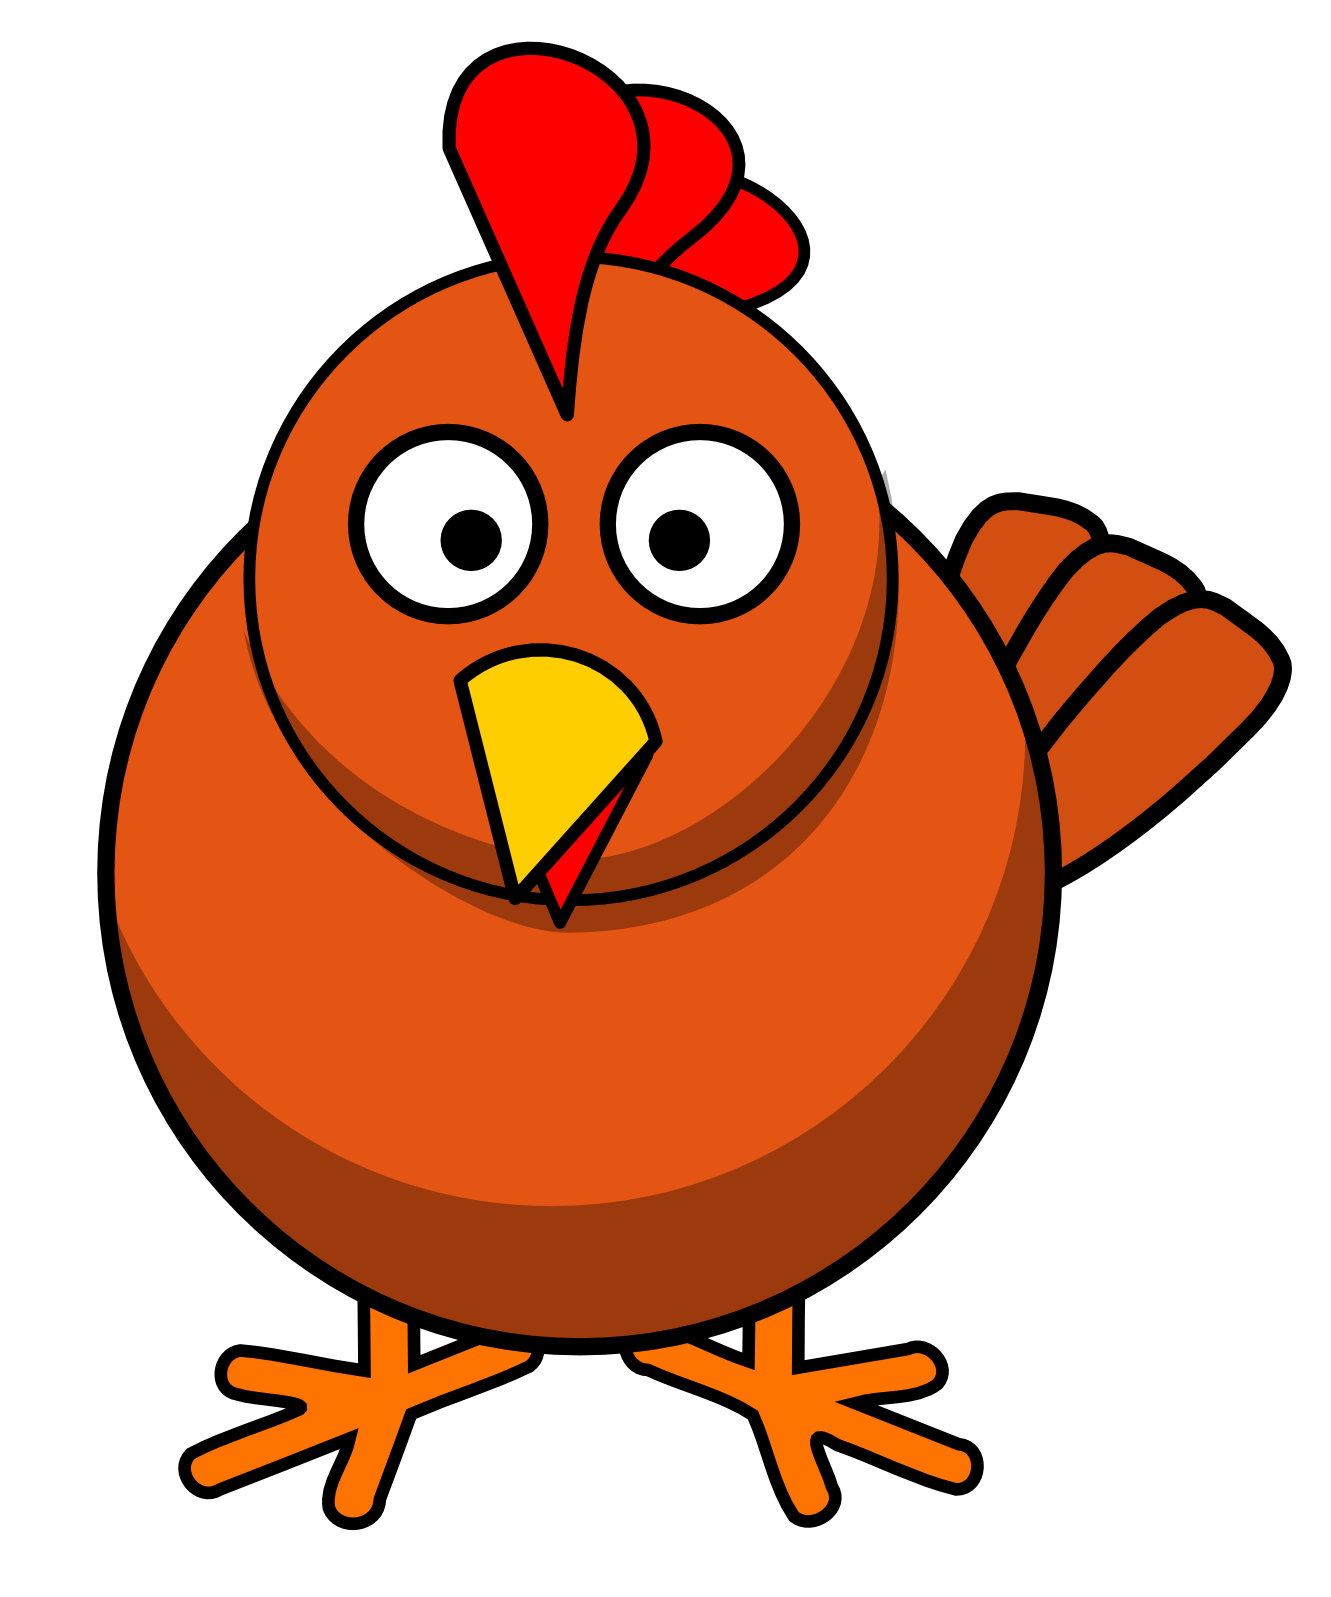 Chicken Egg Clipart | Clipart Panda - Free Clipart Images